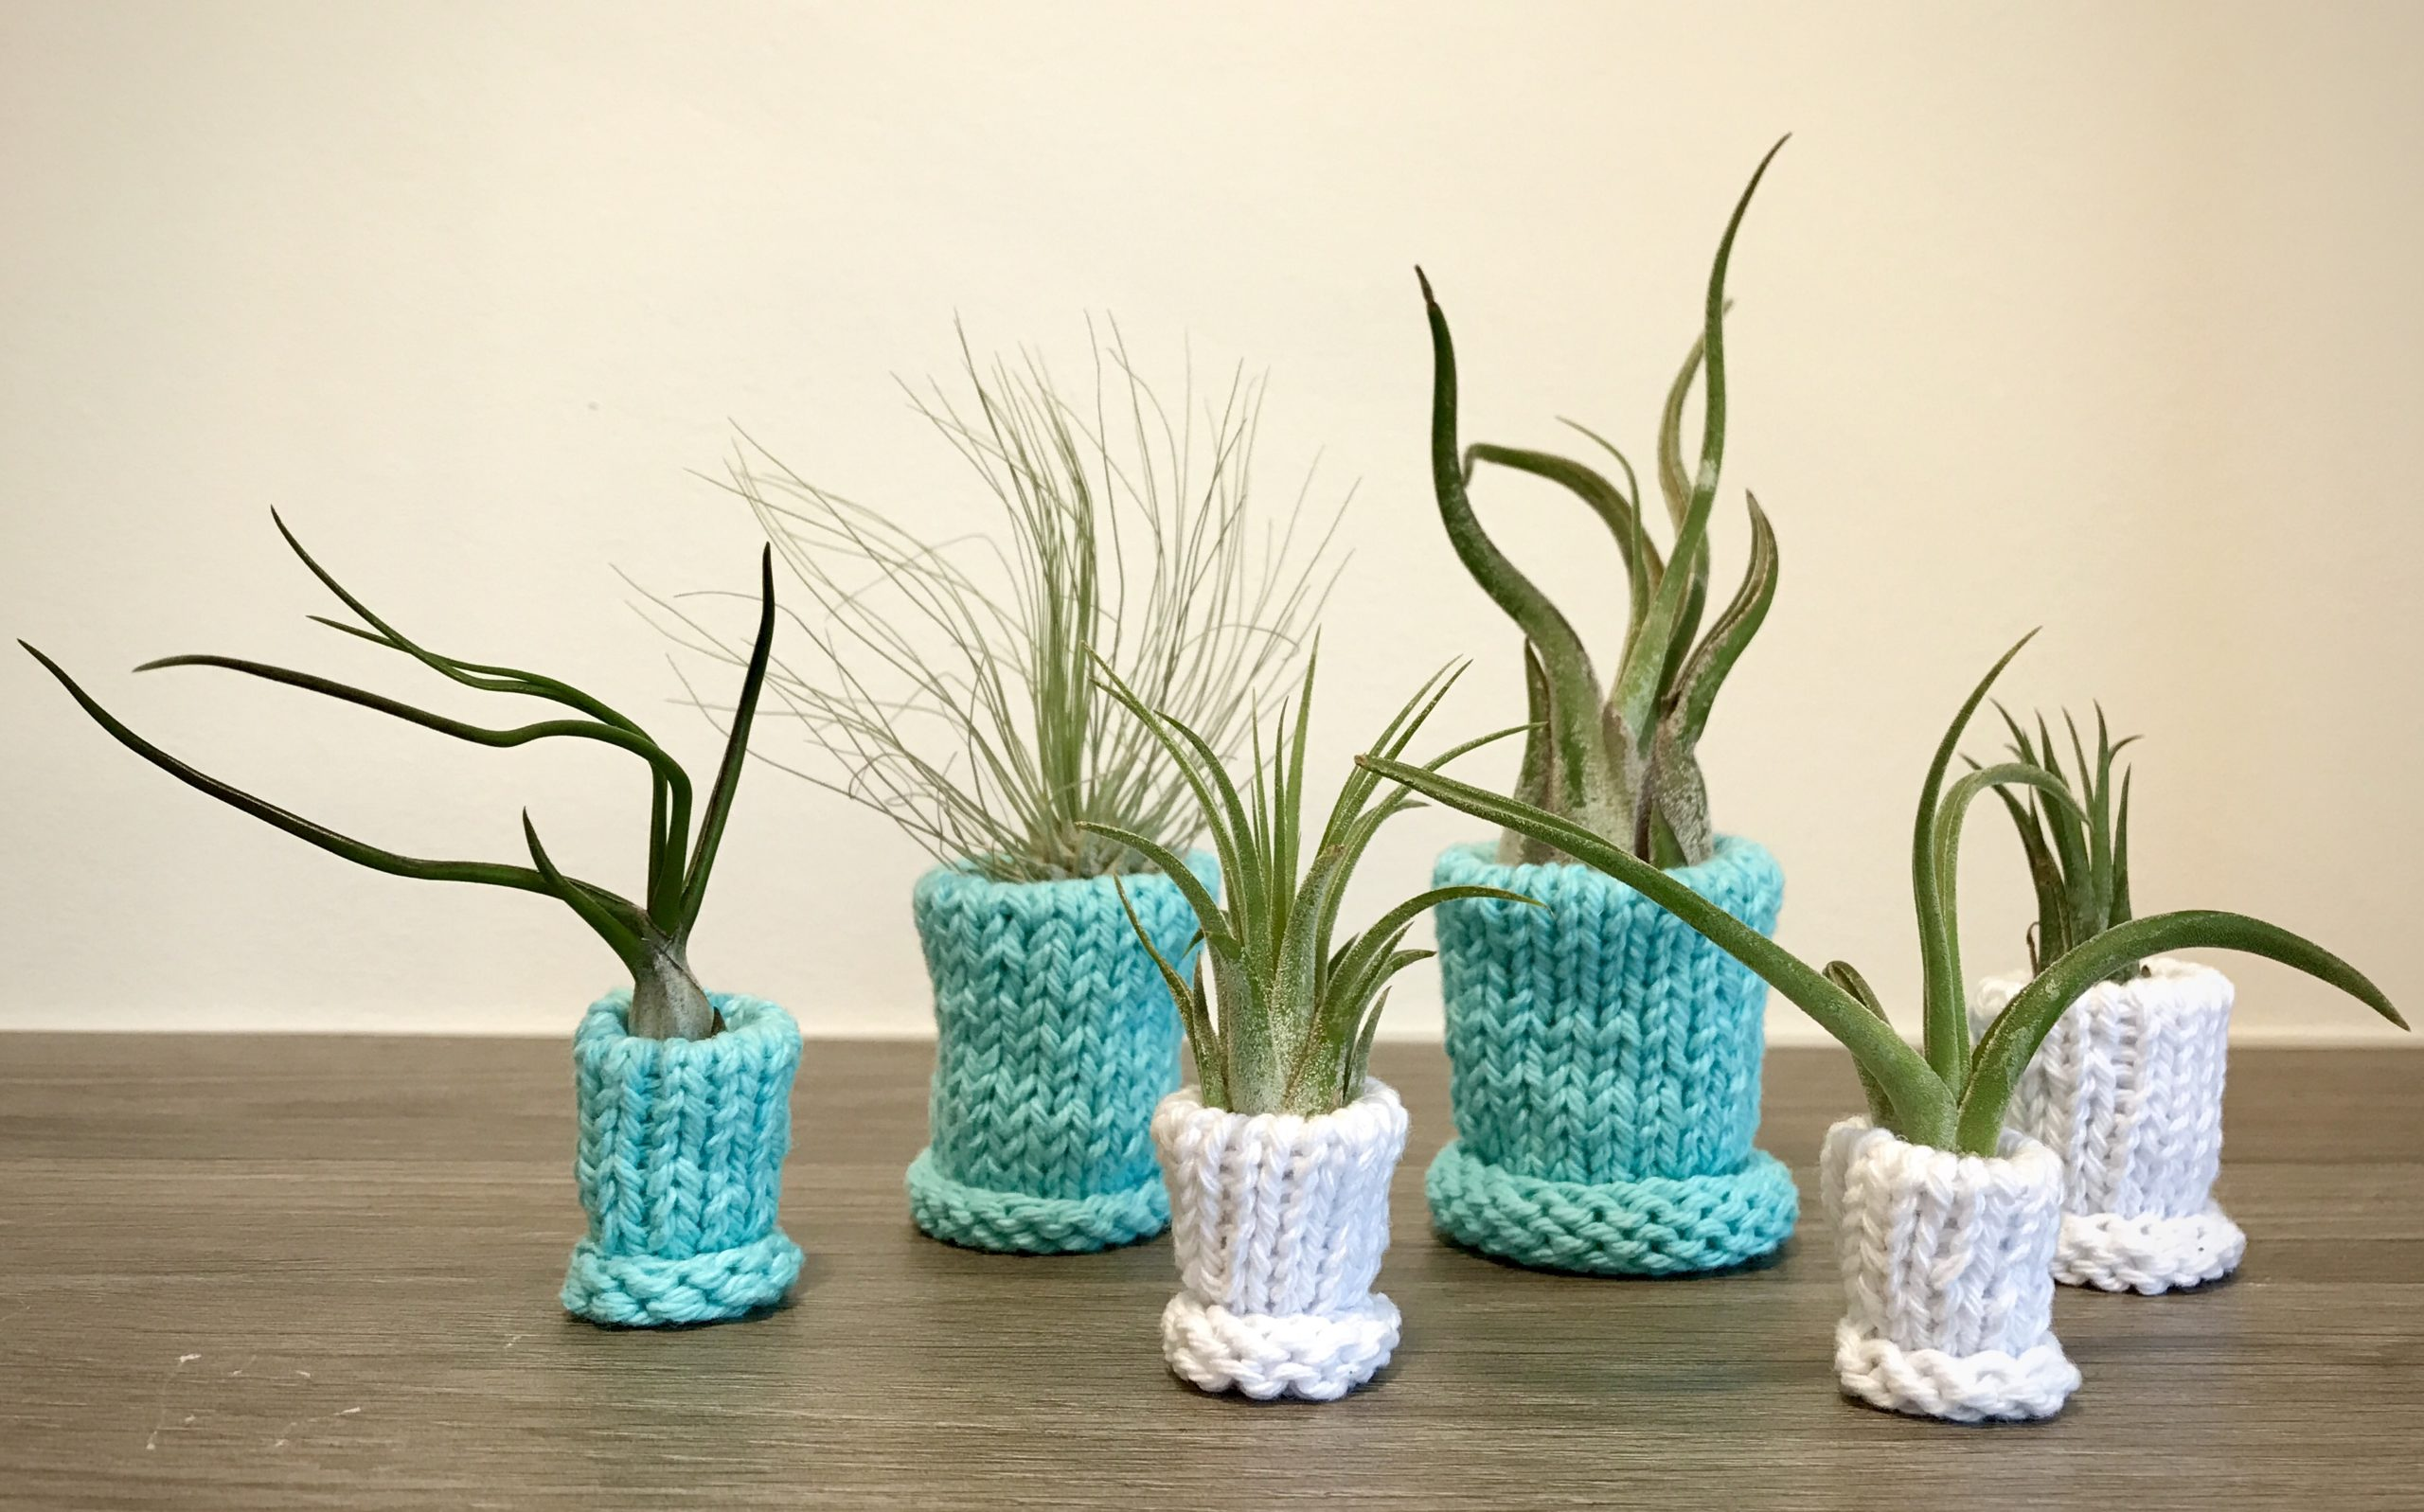 "My husband and I are tucked away at home without kids or pets, so I decided to spoil our family of air plants with handmade knit """"sweater"""" planters. Our time at home may just take us to the next level of crazy plant parents. Materials: 100% cotton yarn"